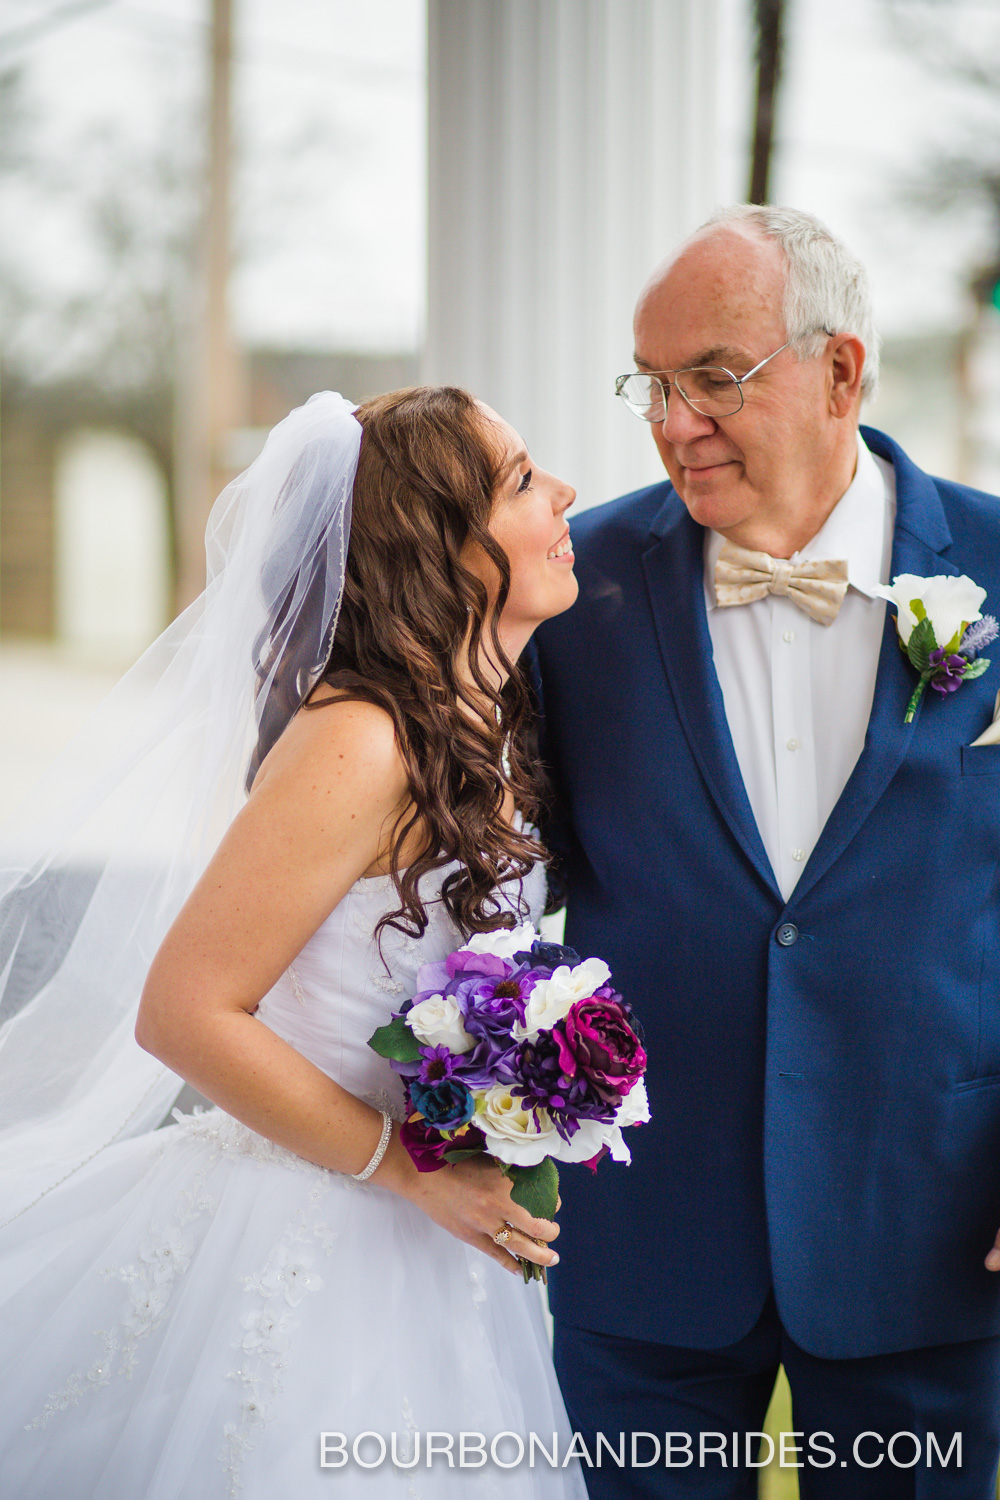 Louisville-wedding-kentucky-bride-dad.jpg